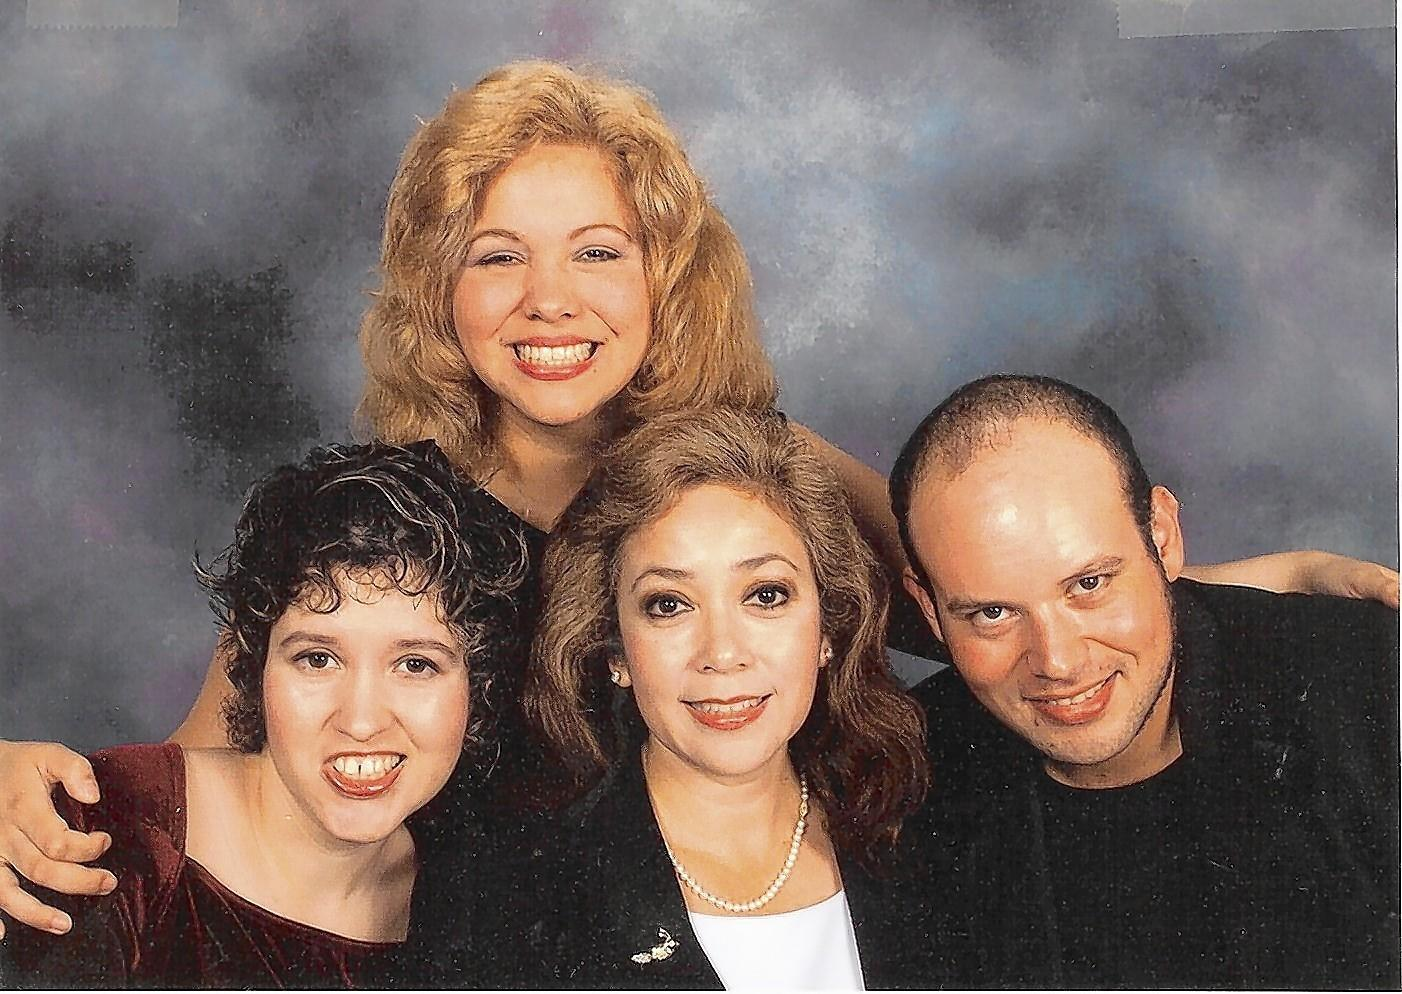 Frances Saldana poses for a family portrait with her children, Margie, Michael and Marie. Marie Portillo, whose Huntington's disease symptoms started when she was 15, died in 2009 at age 32. Margie Hayes died in February of this year at age 44. Michael Portillo, who is 41, is in a care facility. Frances wonders after each visit with him if it will be her last.